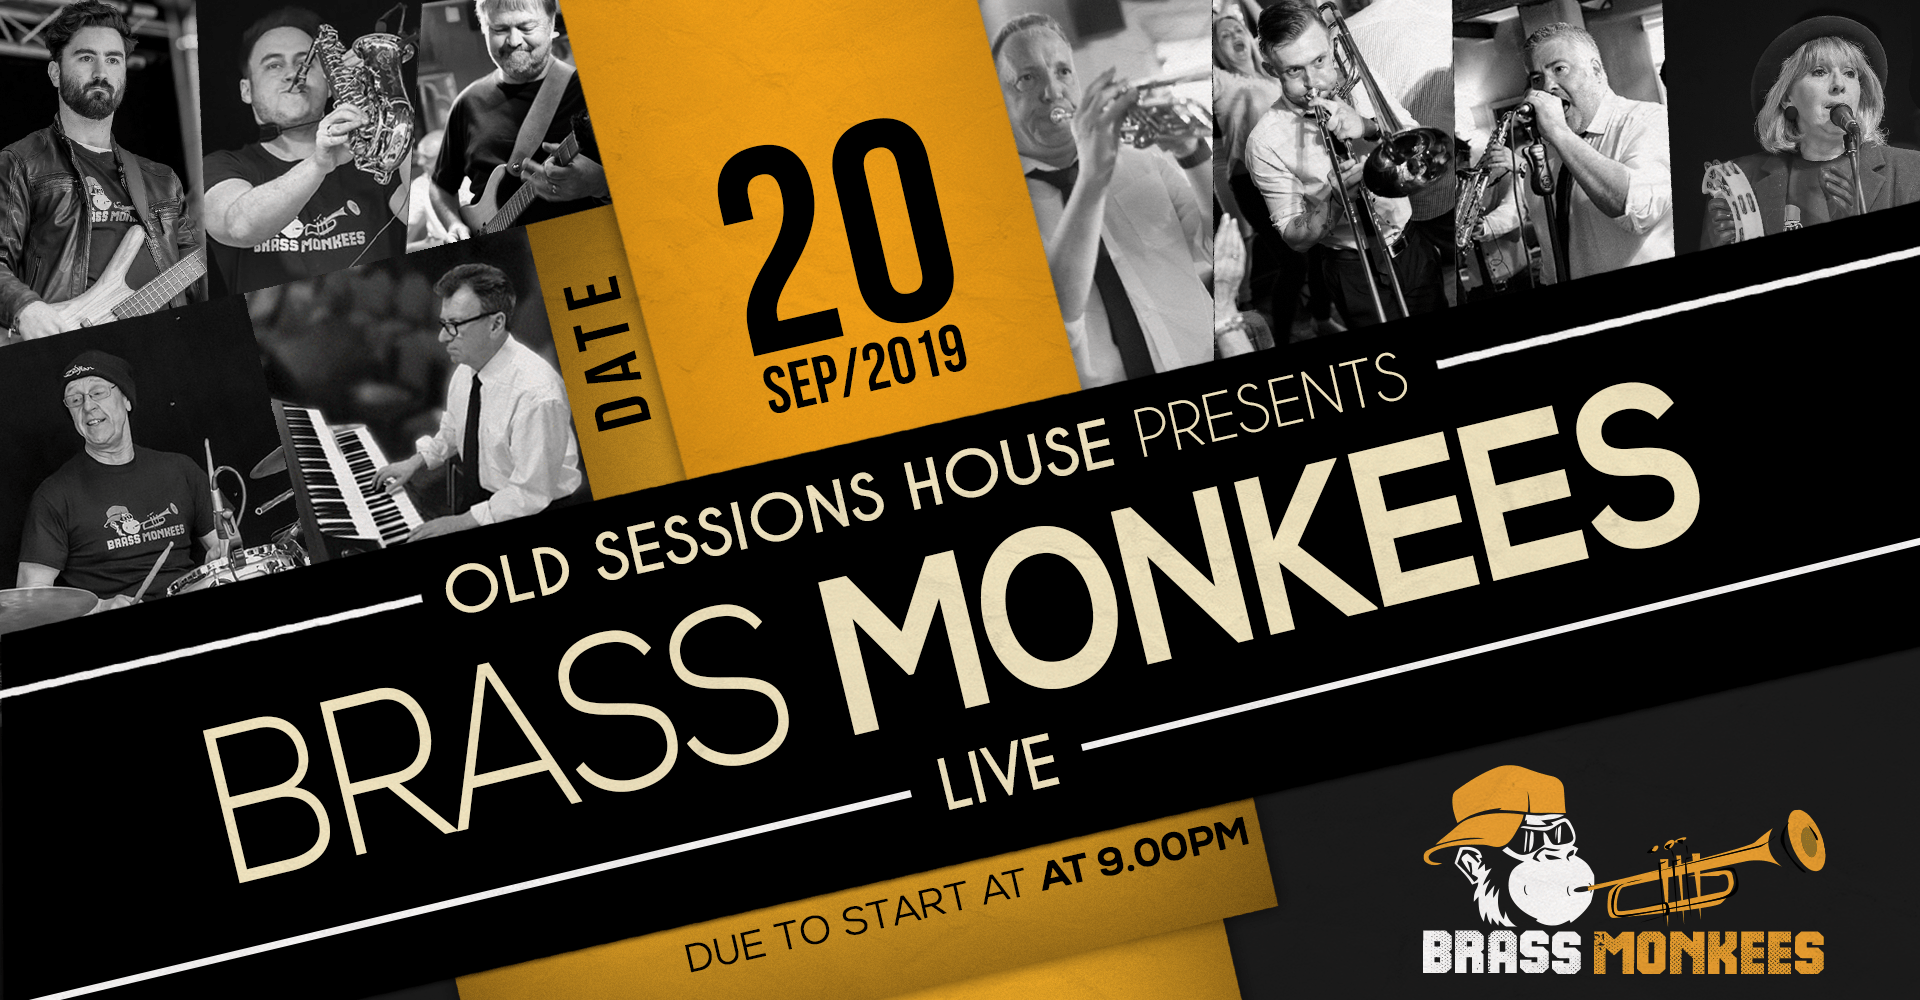 Brass Monkees Old Sessions House